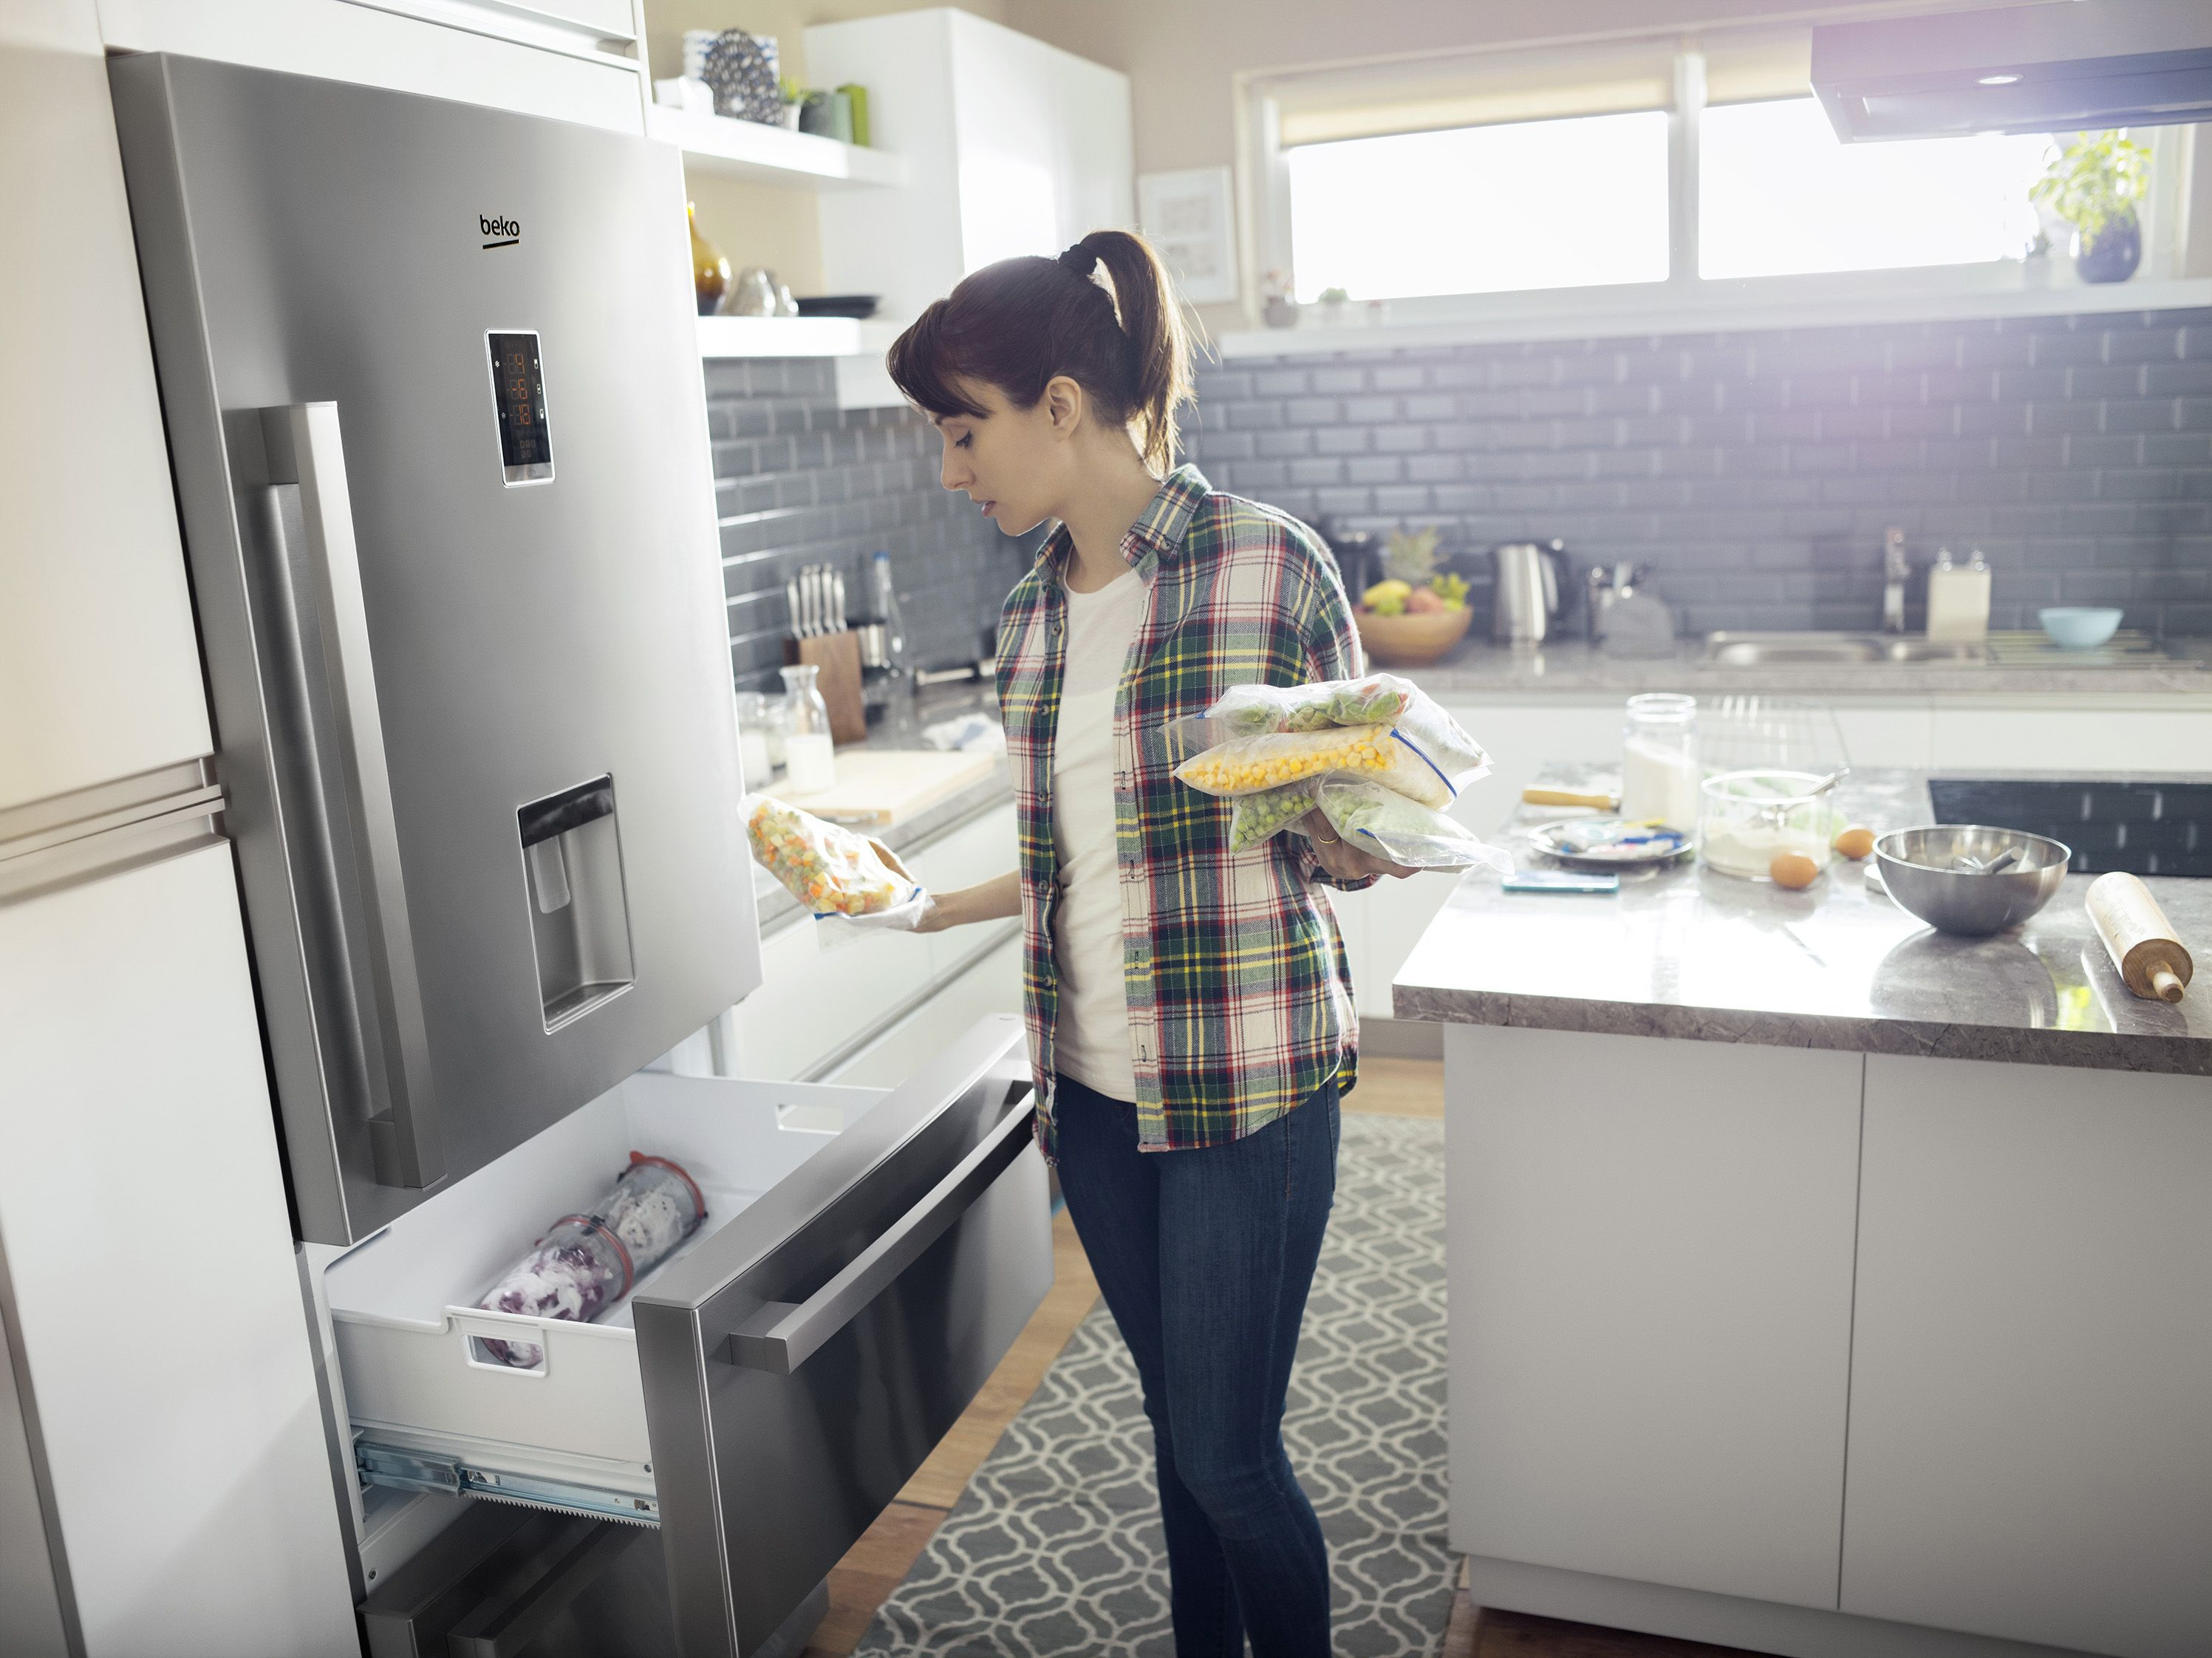 Cooling Technology And Innovation - Home Appliances